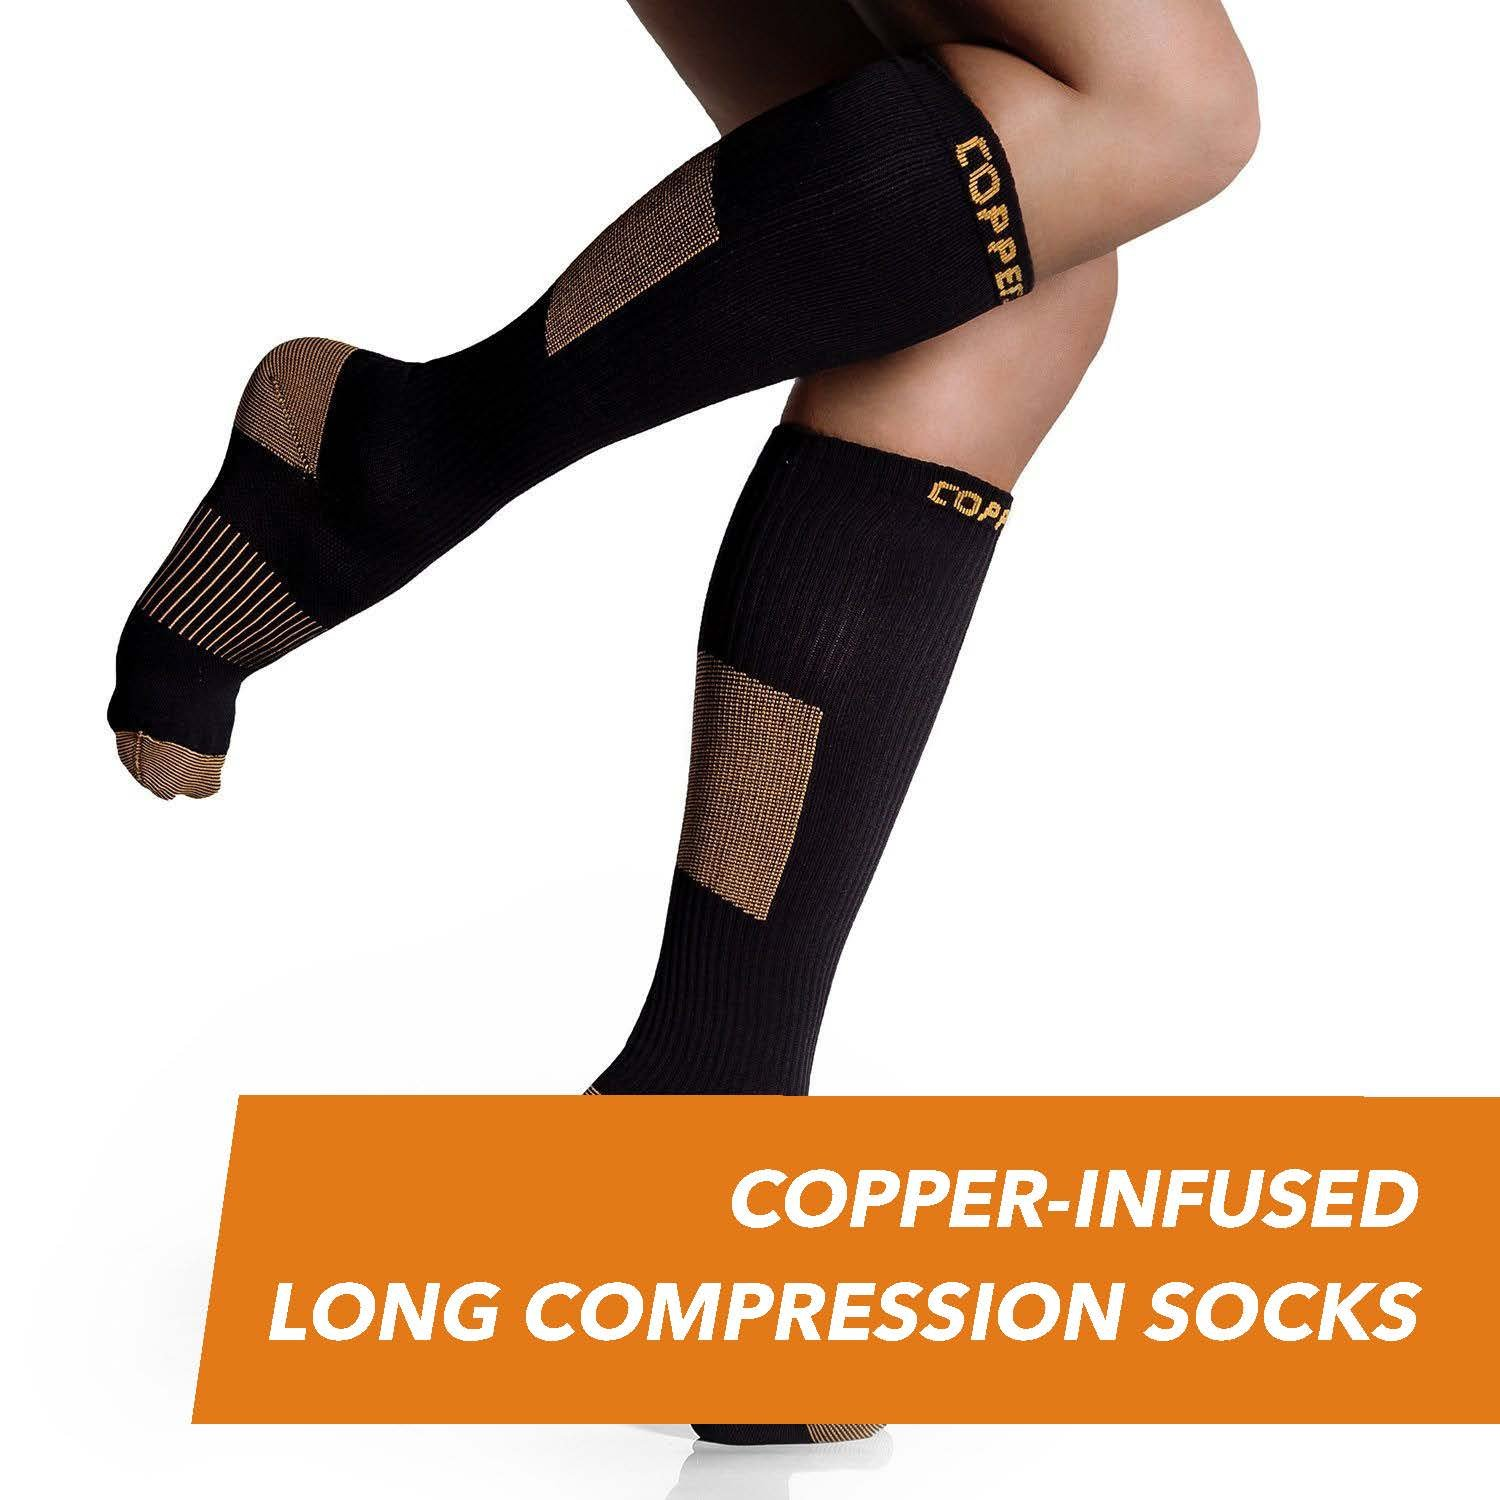 CopperJoint Copper-Infused Long Compression Socks, Comfortable and Durable Design Promotes Blood Circulation in Feet and Legs for All Lifestyles, Pair (Large/X-Large)